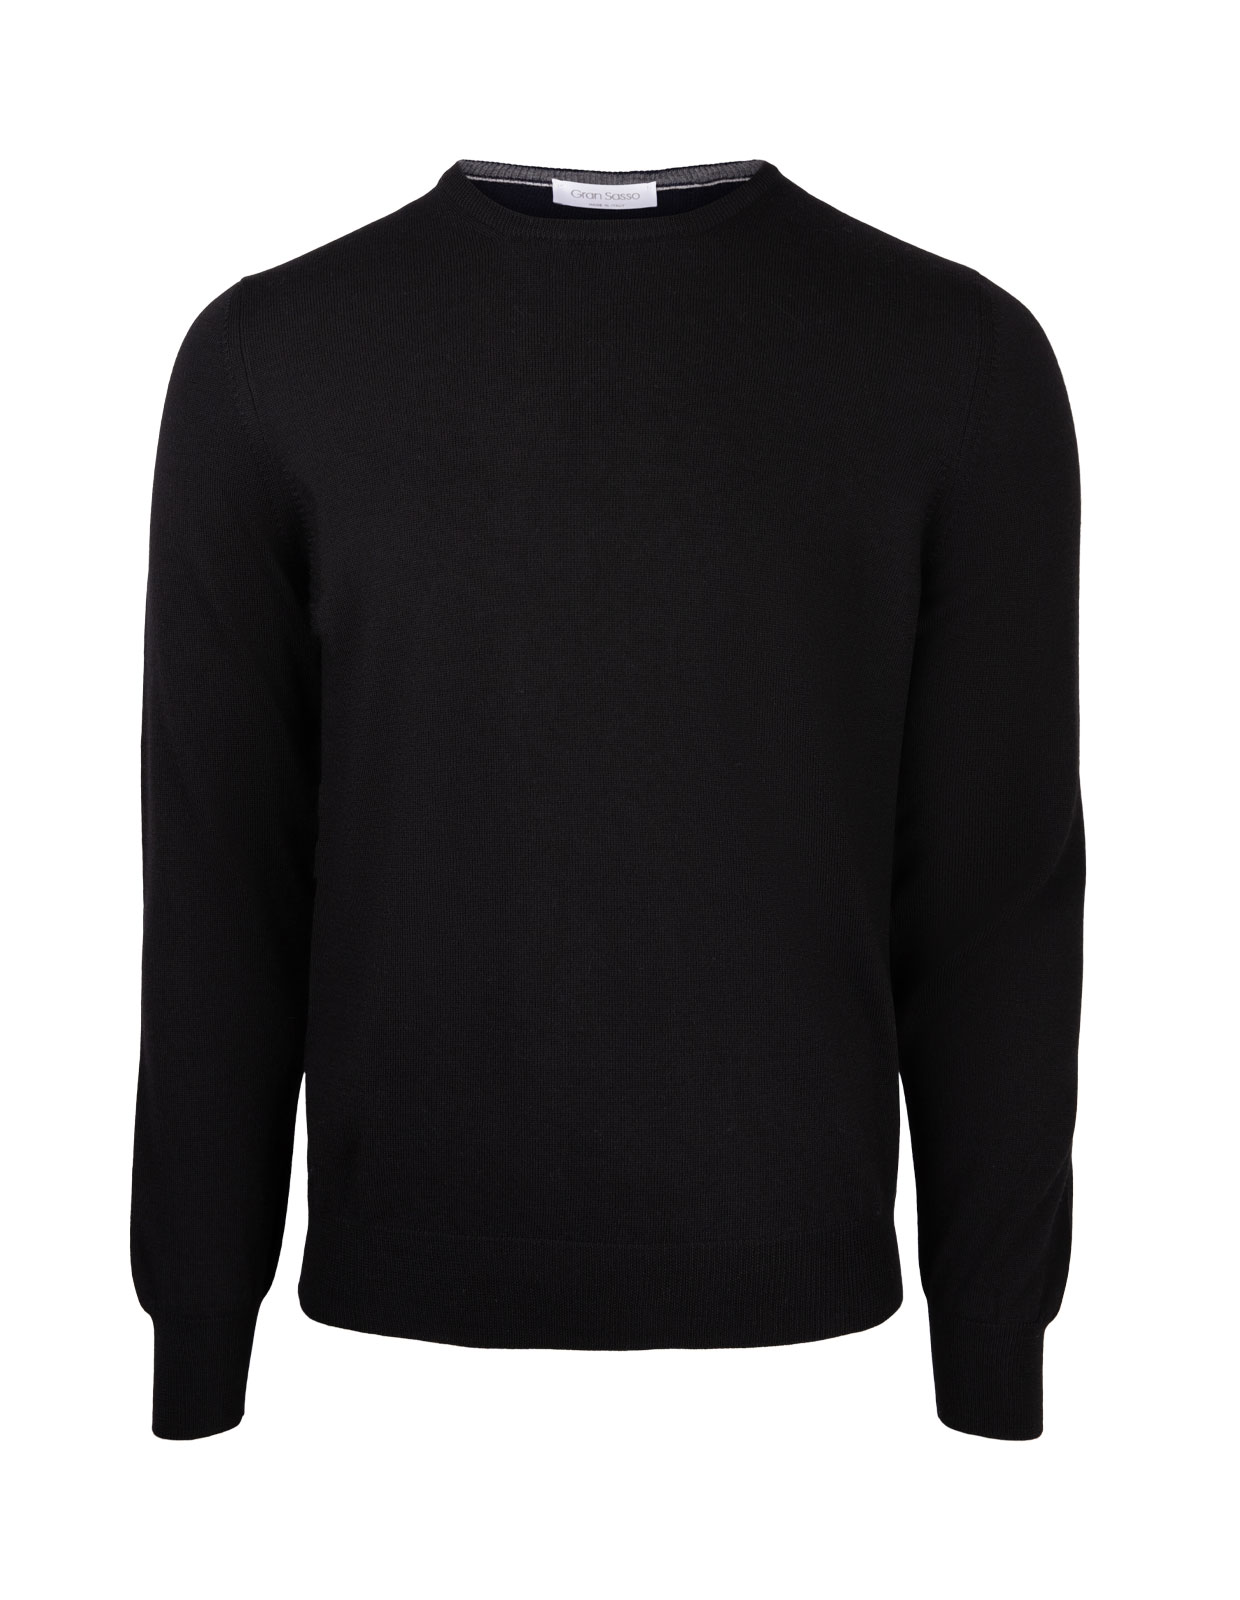 Fashion Fit Crew Neck Merino Pullover Black